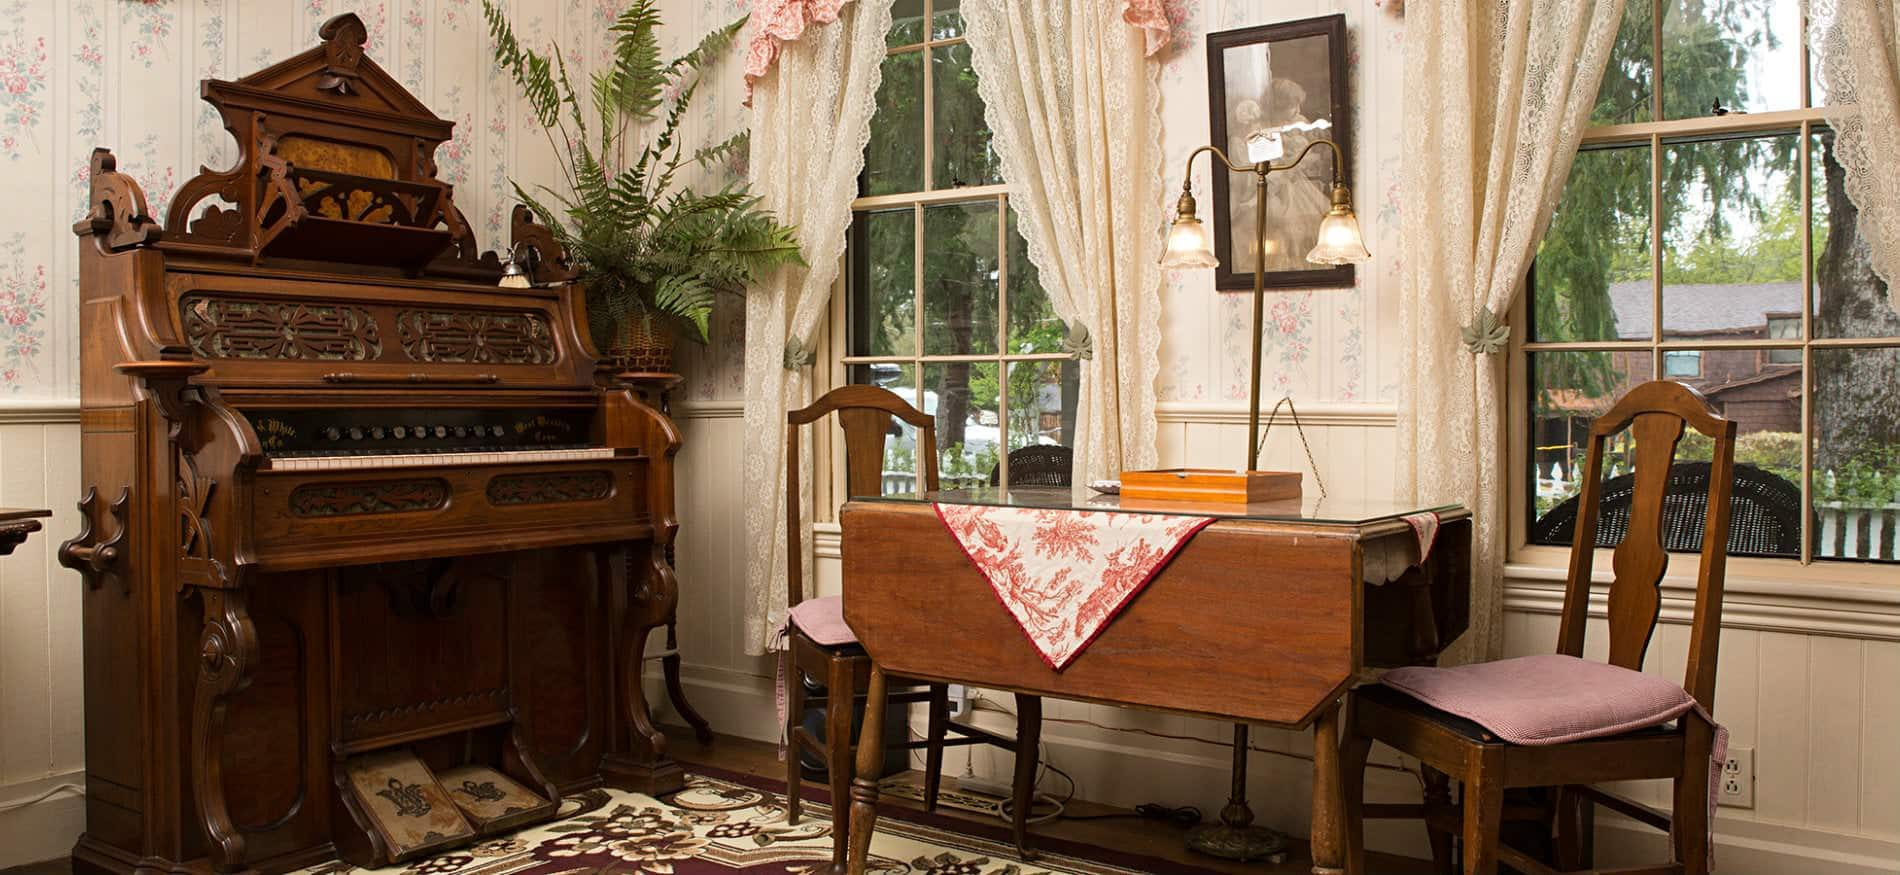 Ornate antique organ, wood drop-leaf table with two chairs, light floral wallpaper and two windows with lace curtains